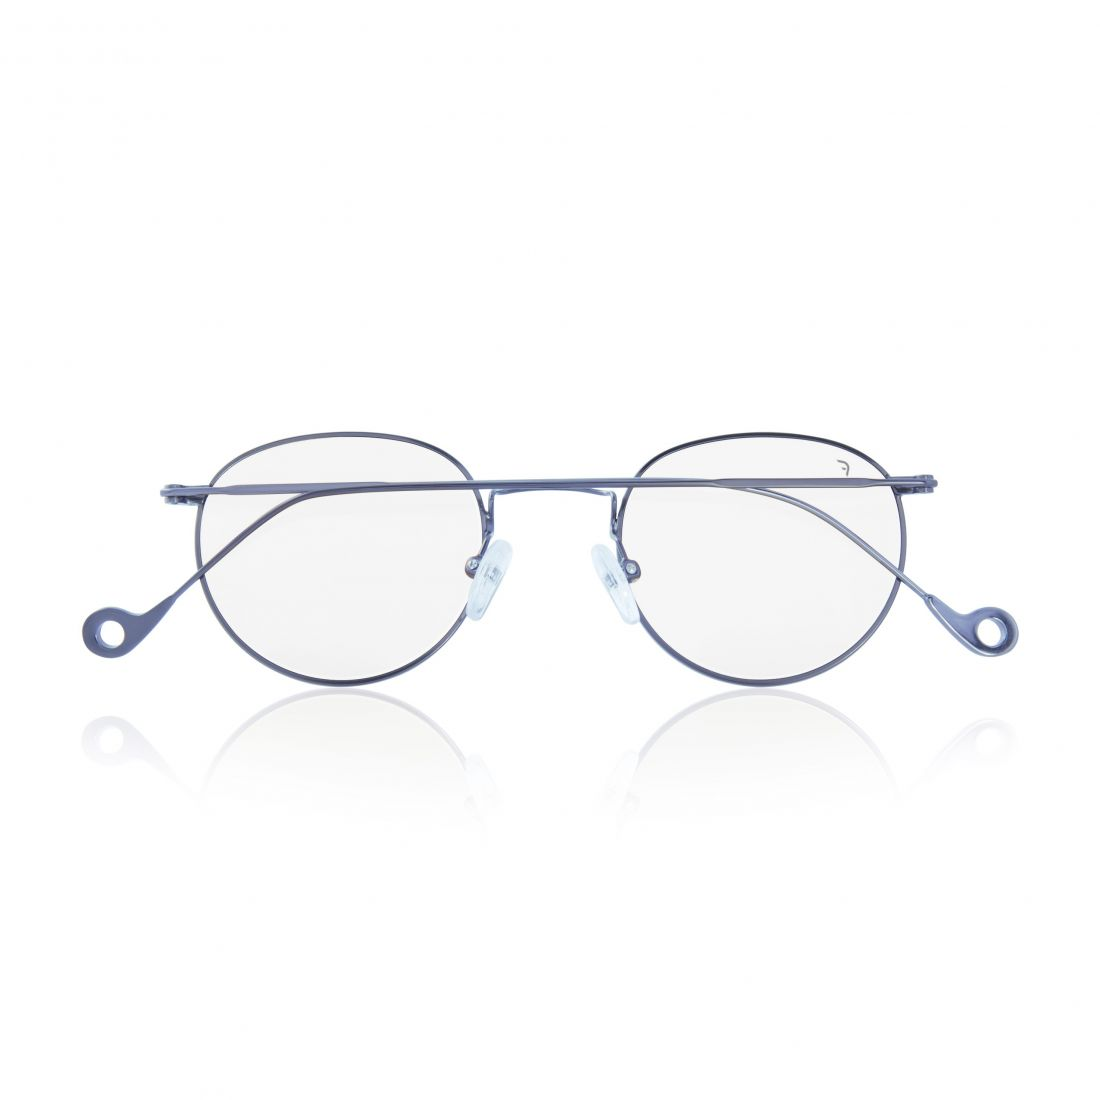 Gold One - stainless steel prescription glasses frame for woman man